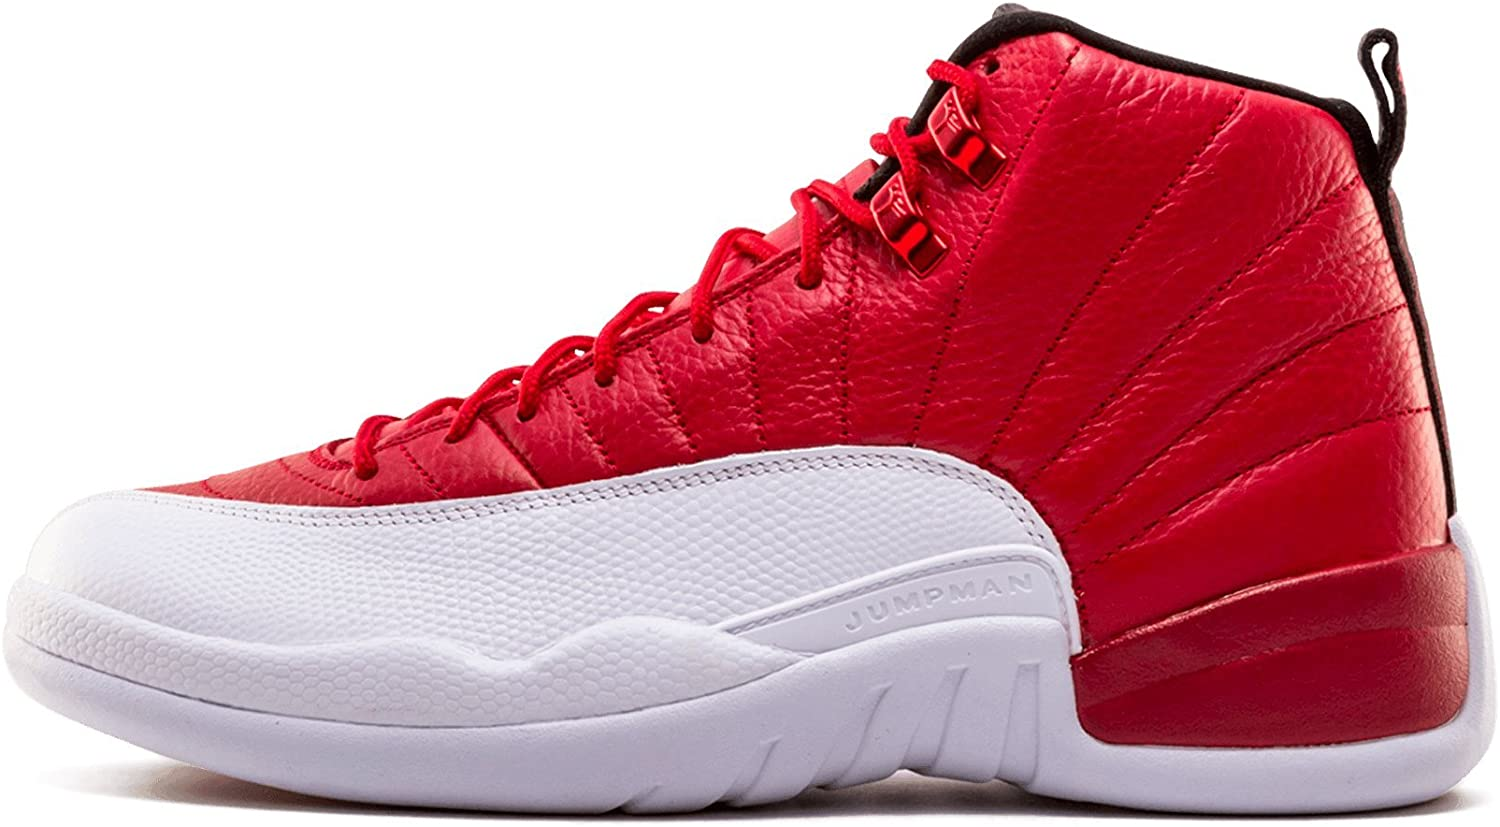 gym red 12s size 11 Shop Clothing